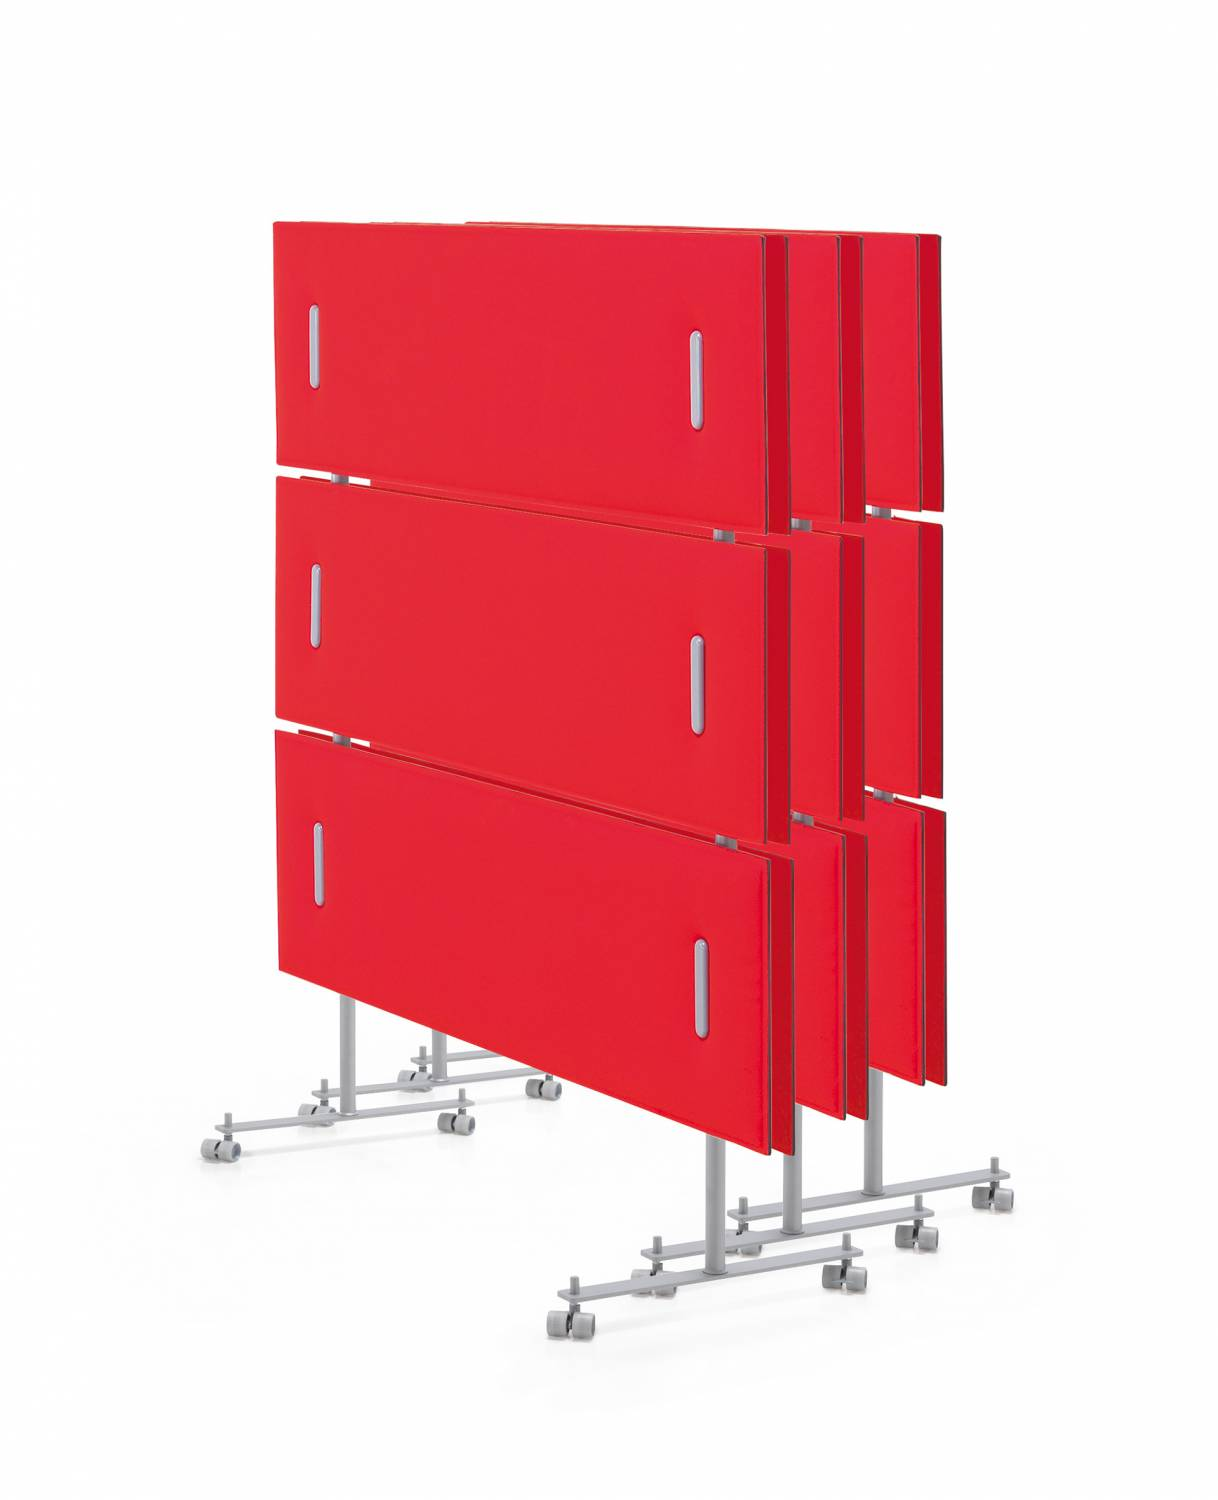 Mitesco-Dividers-Ocee-Red-Mobile-Sound-Absorbing-Privacy-Panels